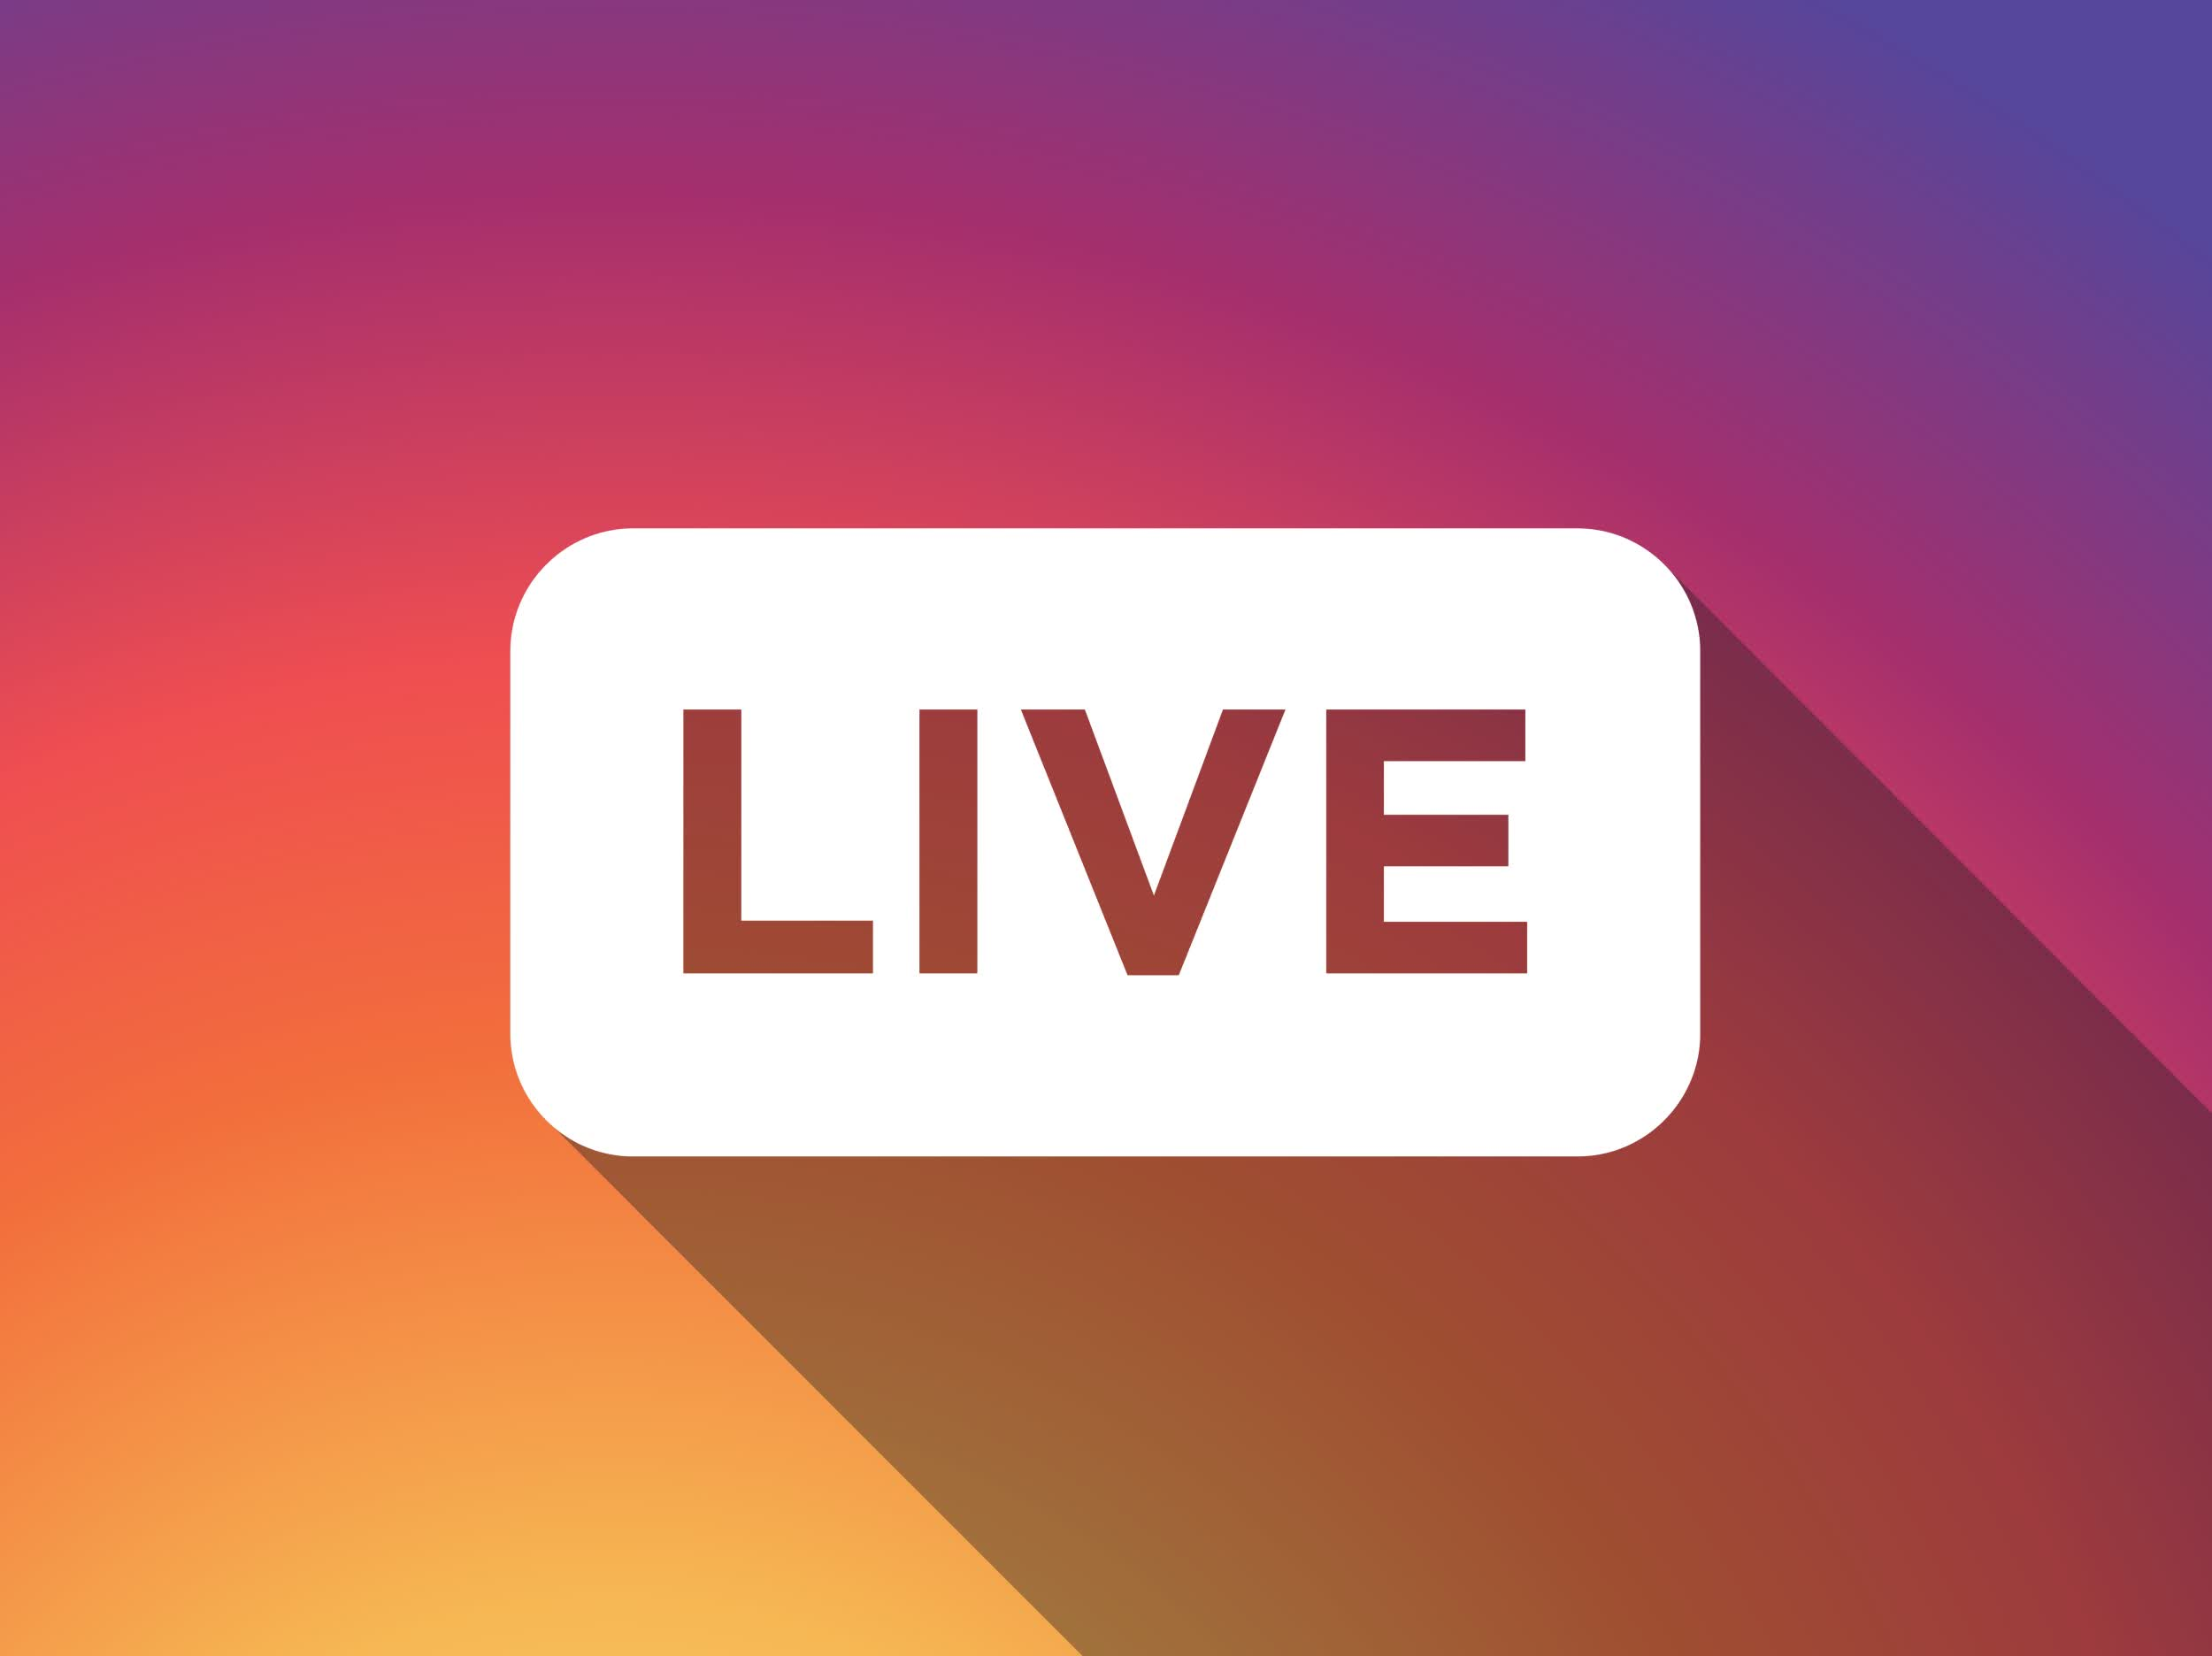 Instagram Live Rooms lets up to four people broadcast simultaneously